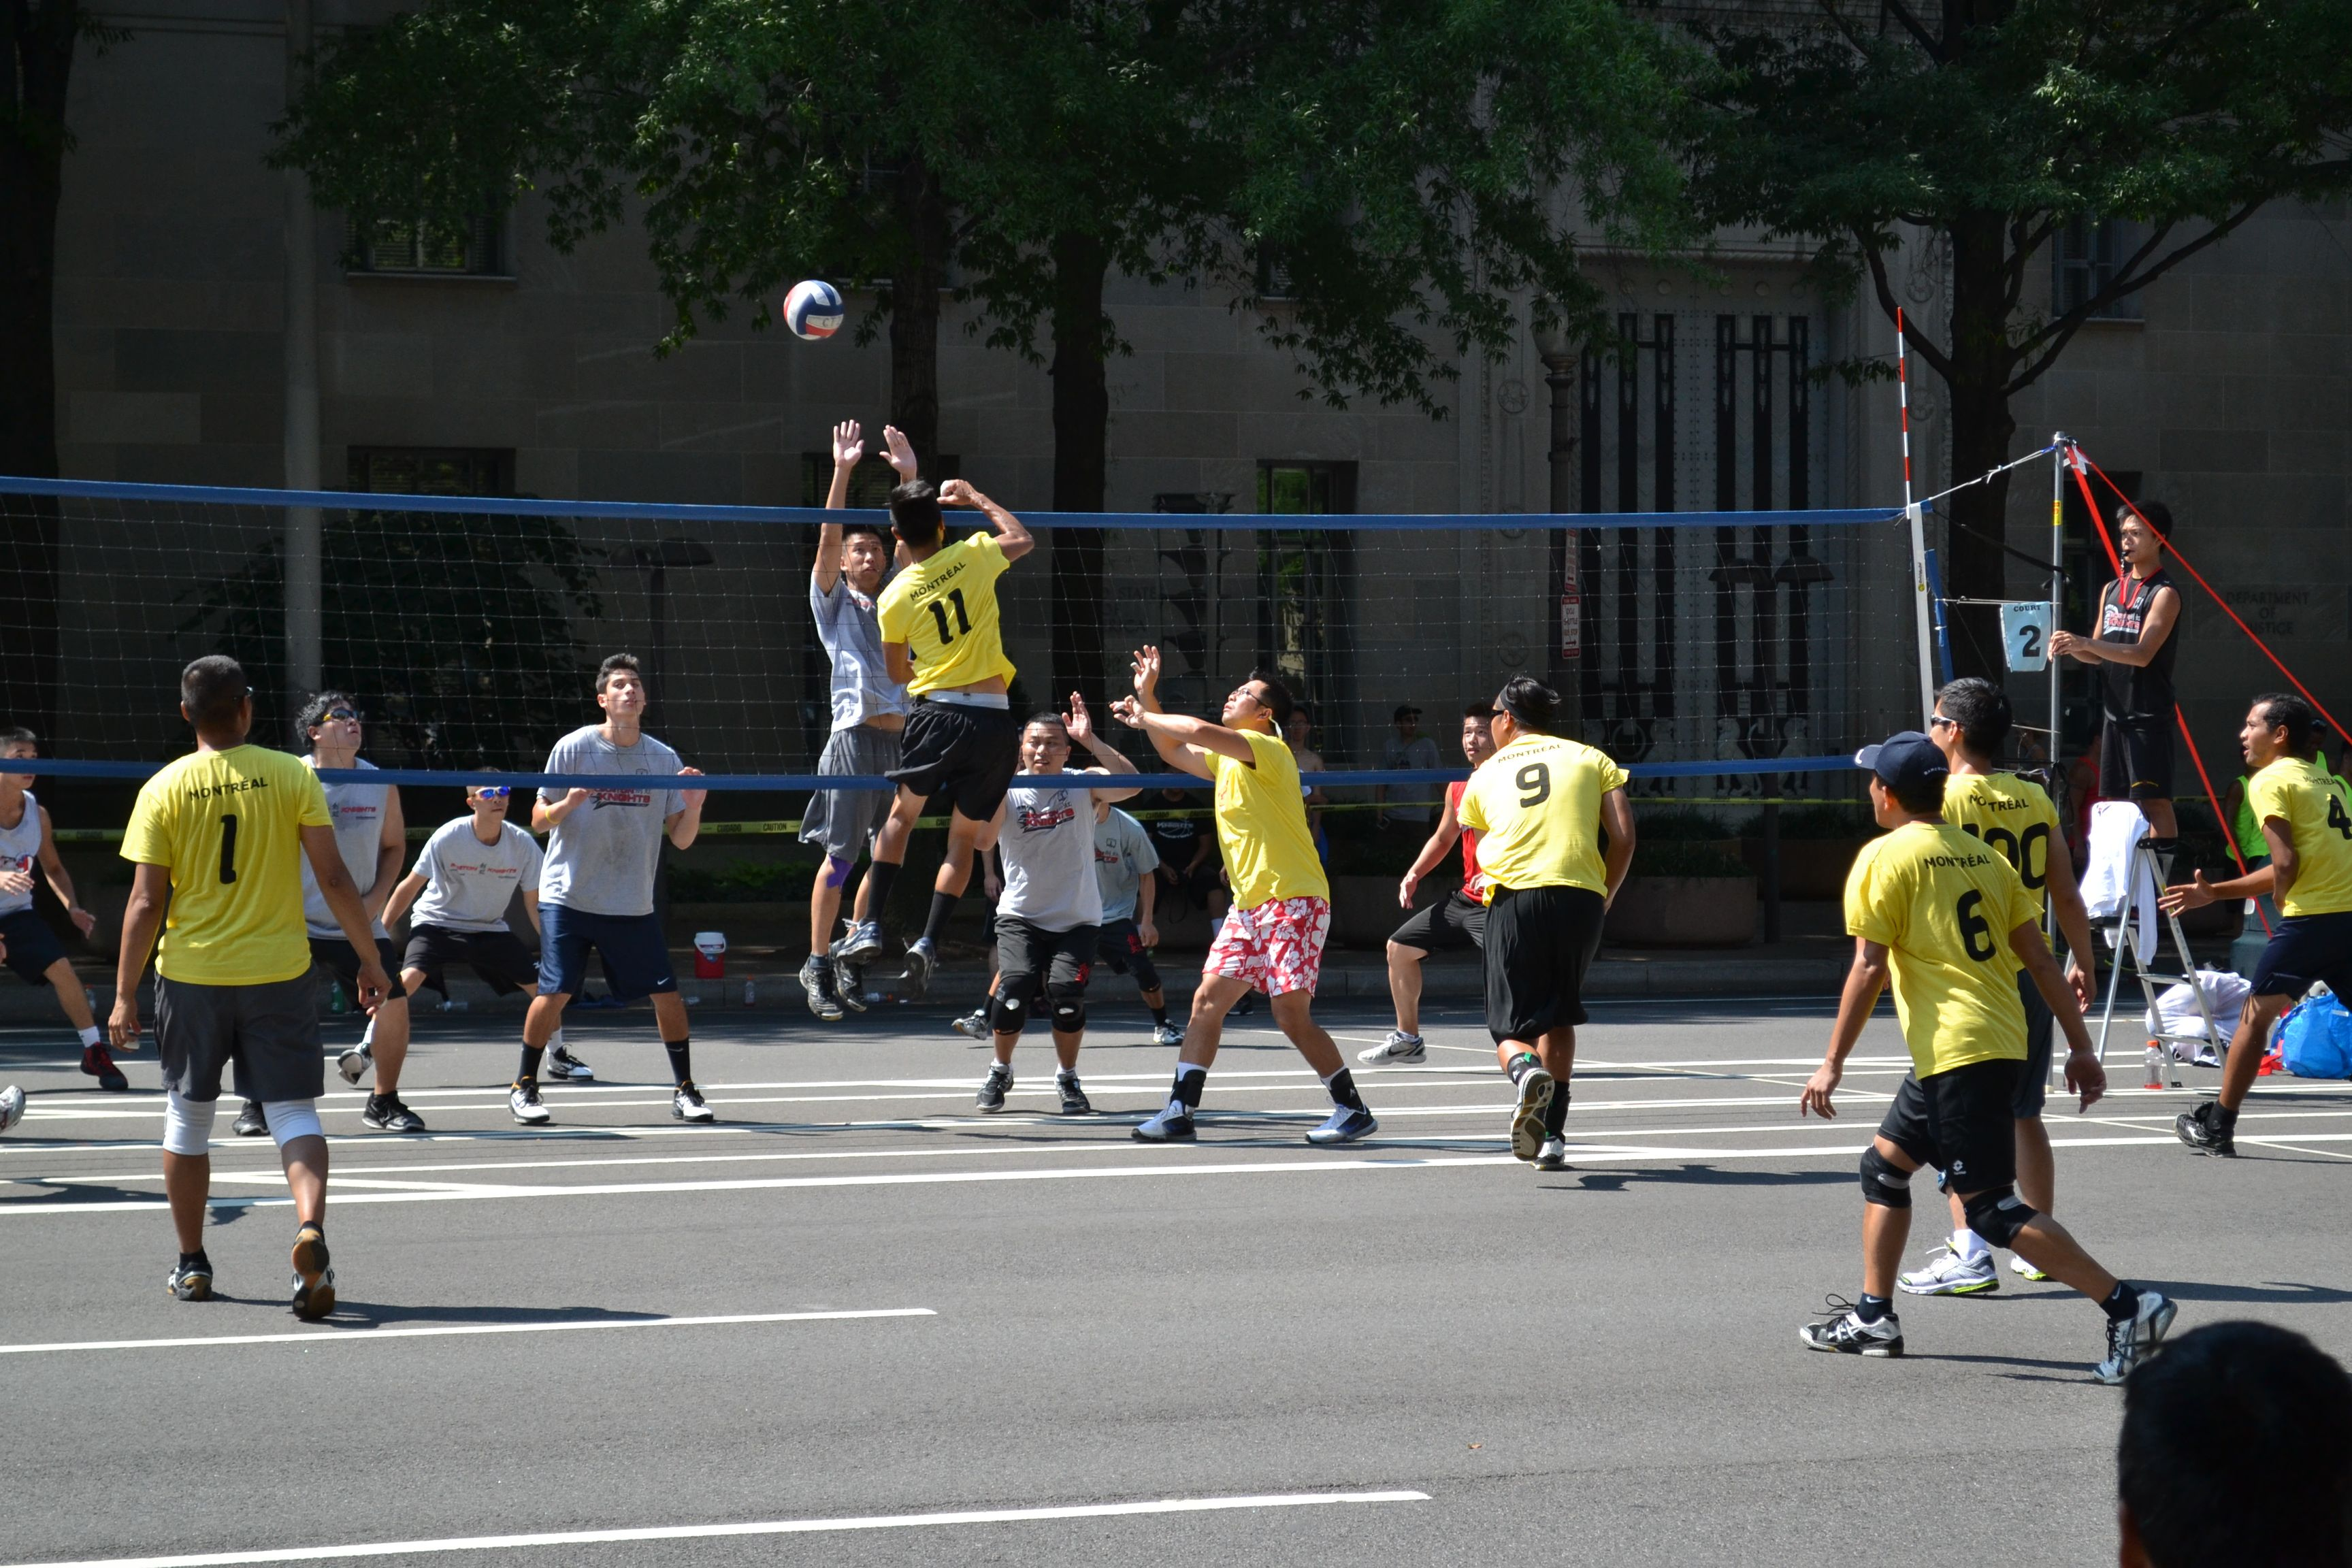 Volleyball Tournament Constitution Street Volleyball Tournaments Volleyball Tournaments